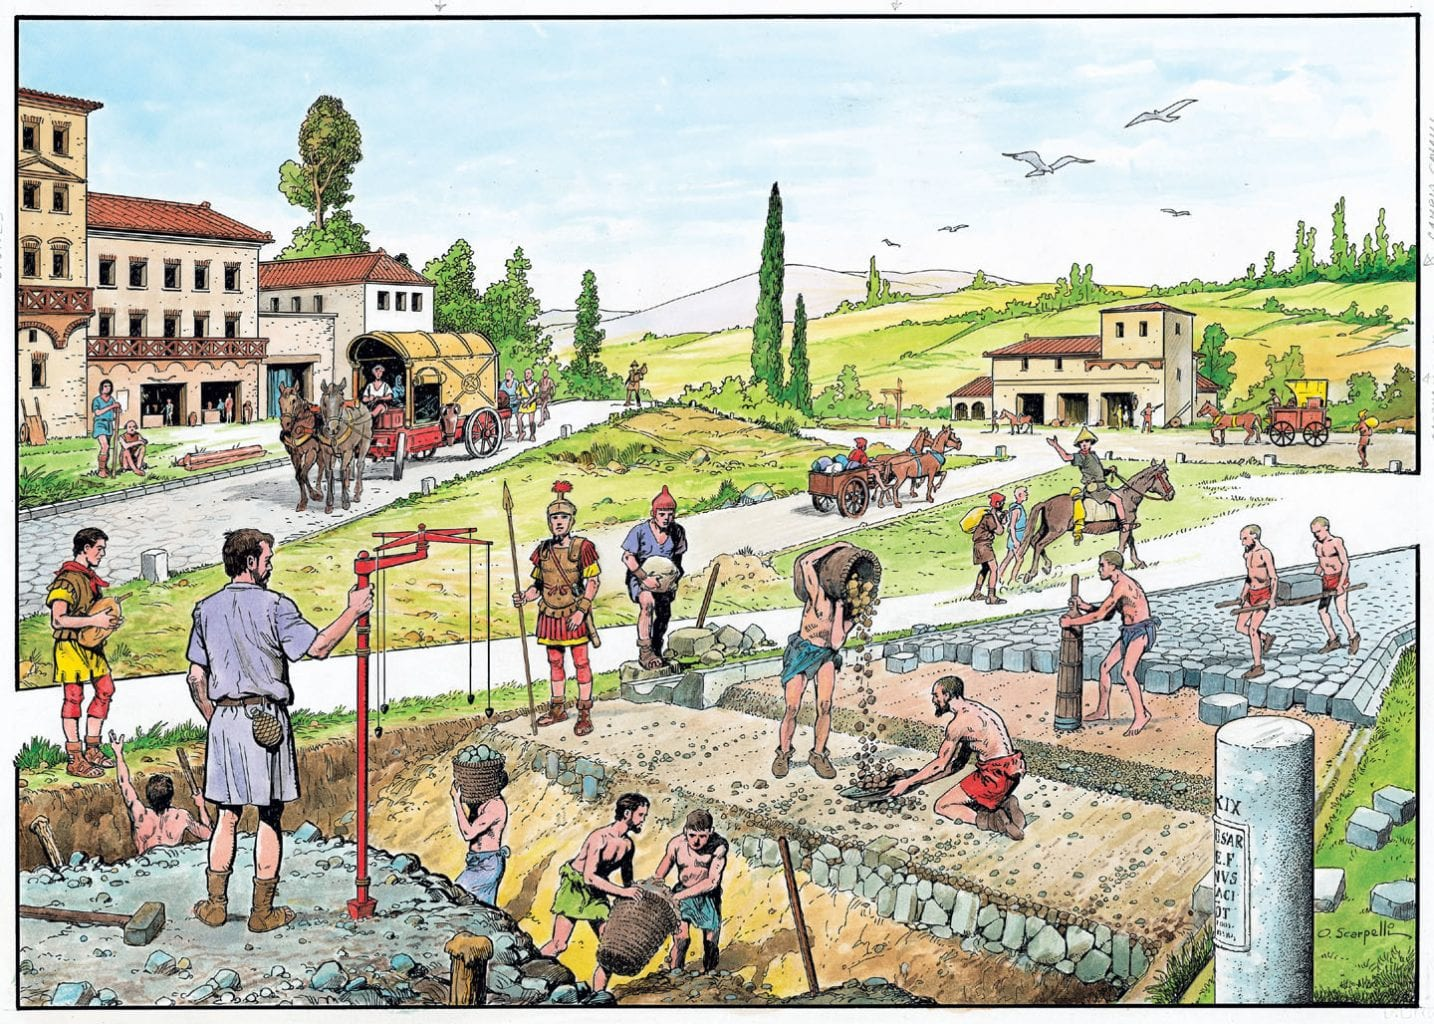 The different stages of ancient Roman road construction. Credit: Pikabu